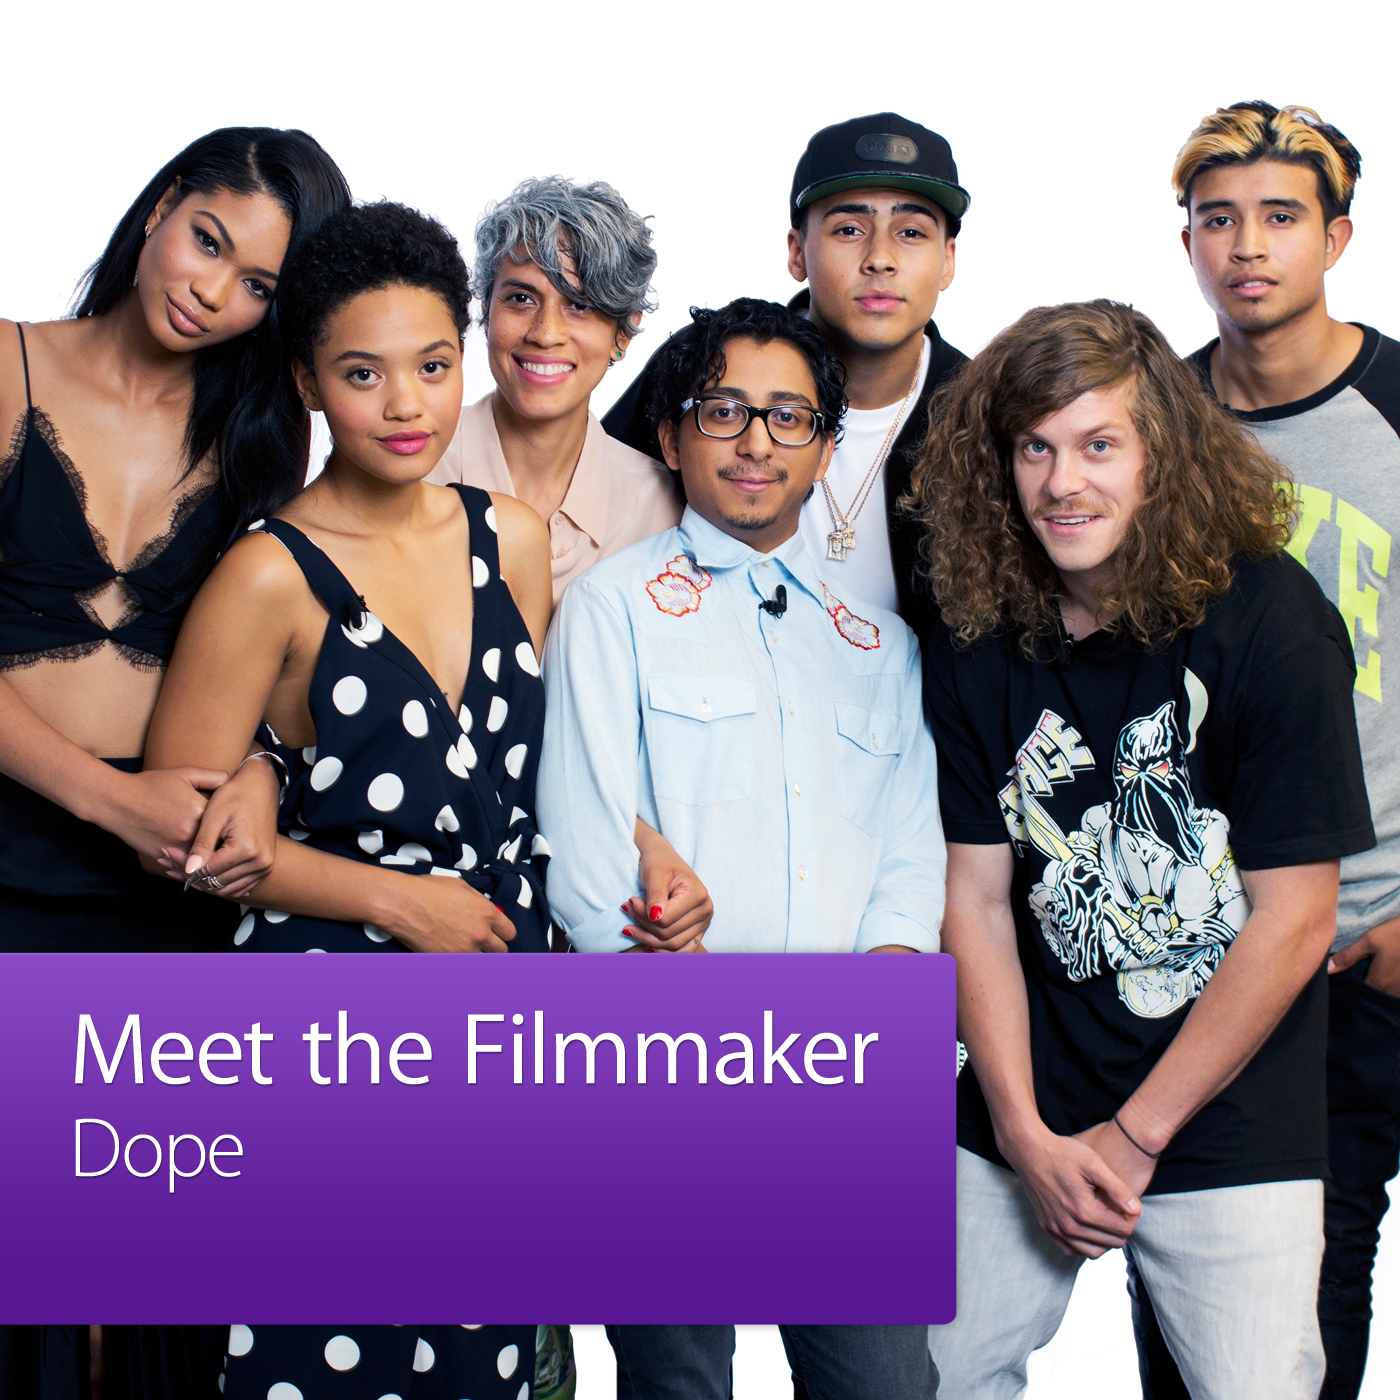 Dope: Meet the Filmmaker